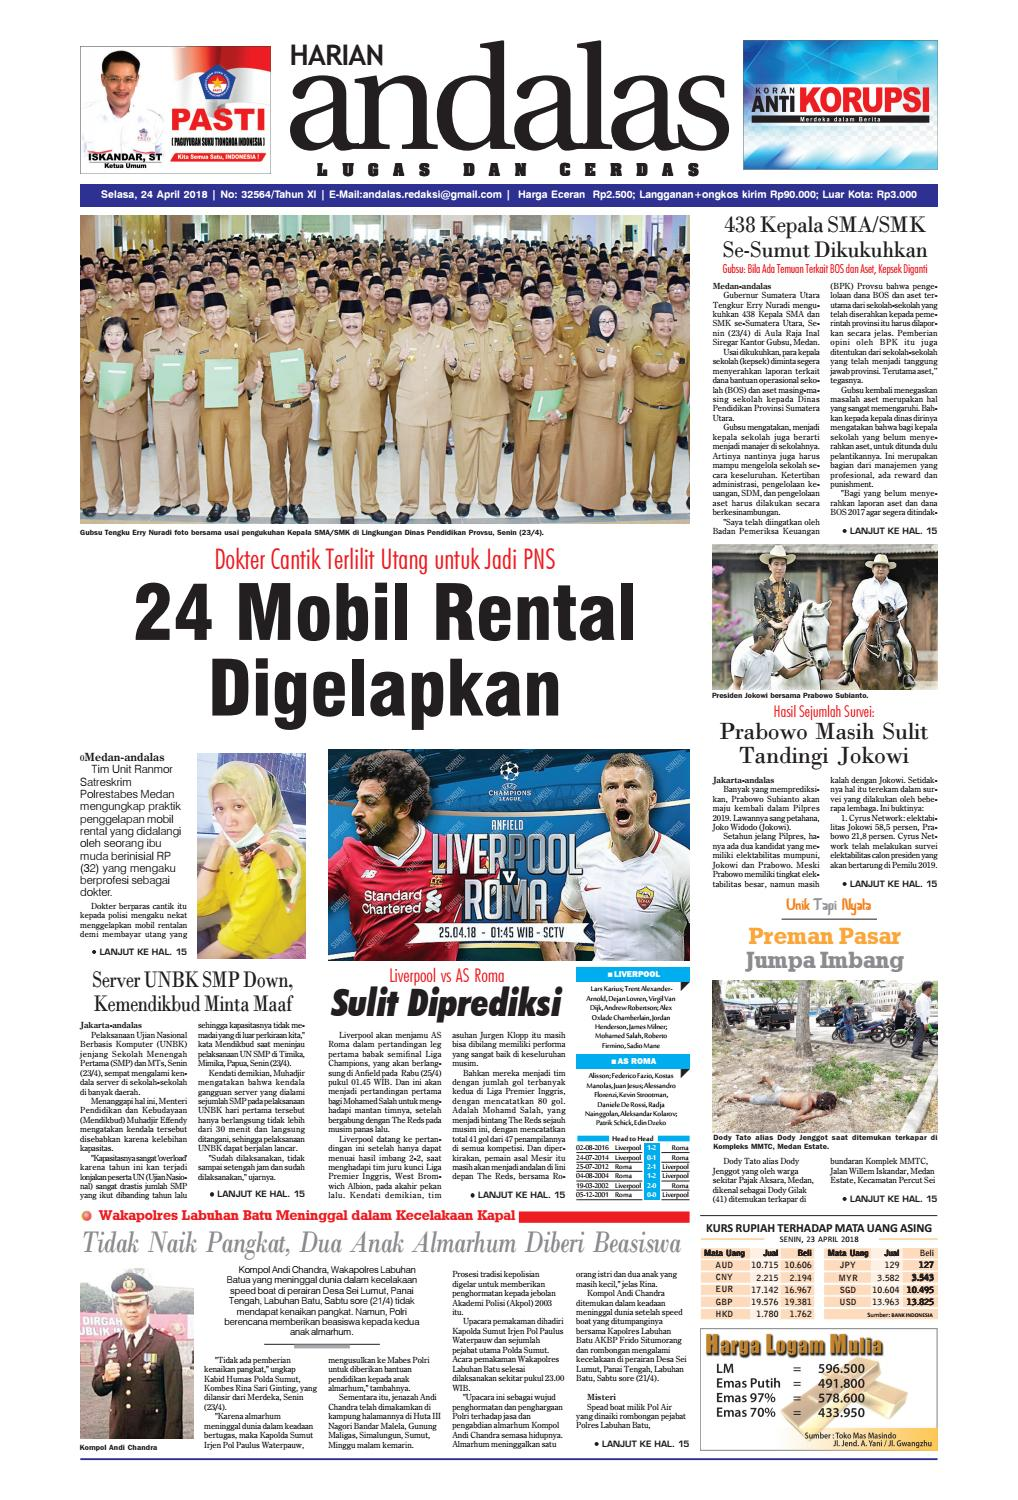 Epaper Andalas Edisi Selasa 24 April 2018 By Media Andalas Issuu